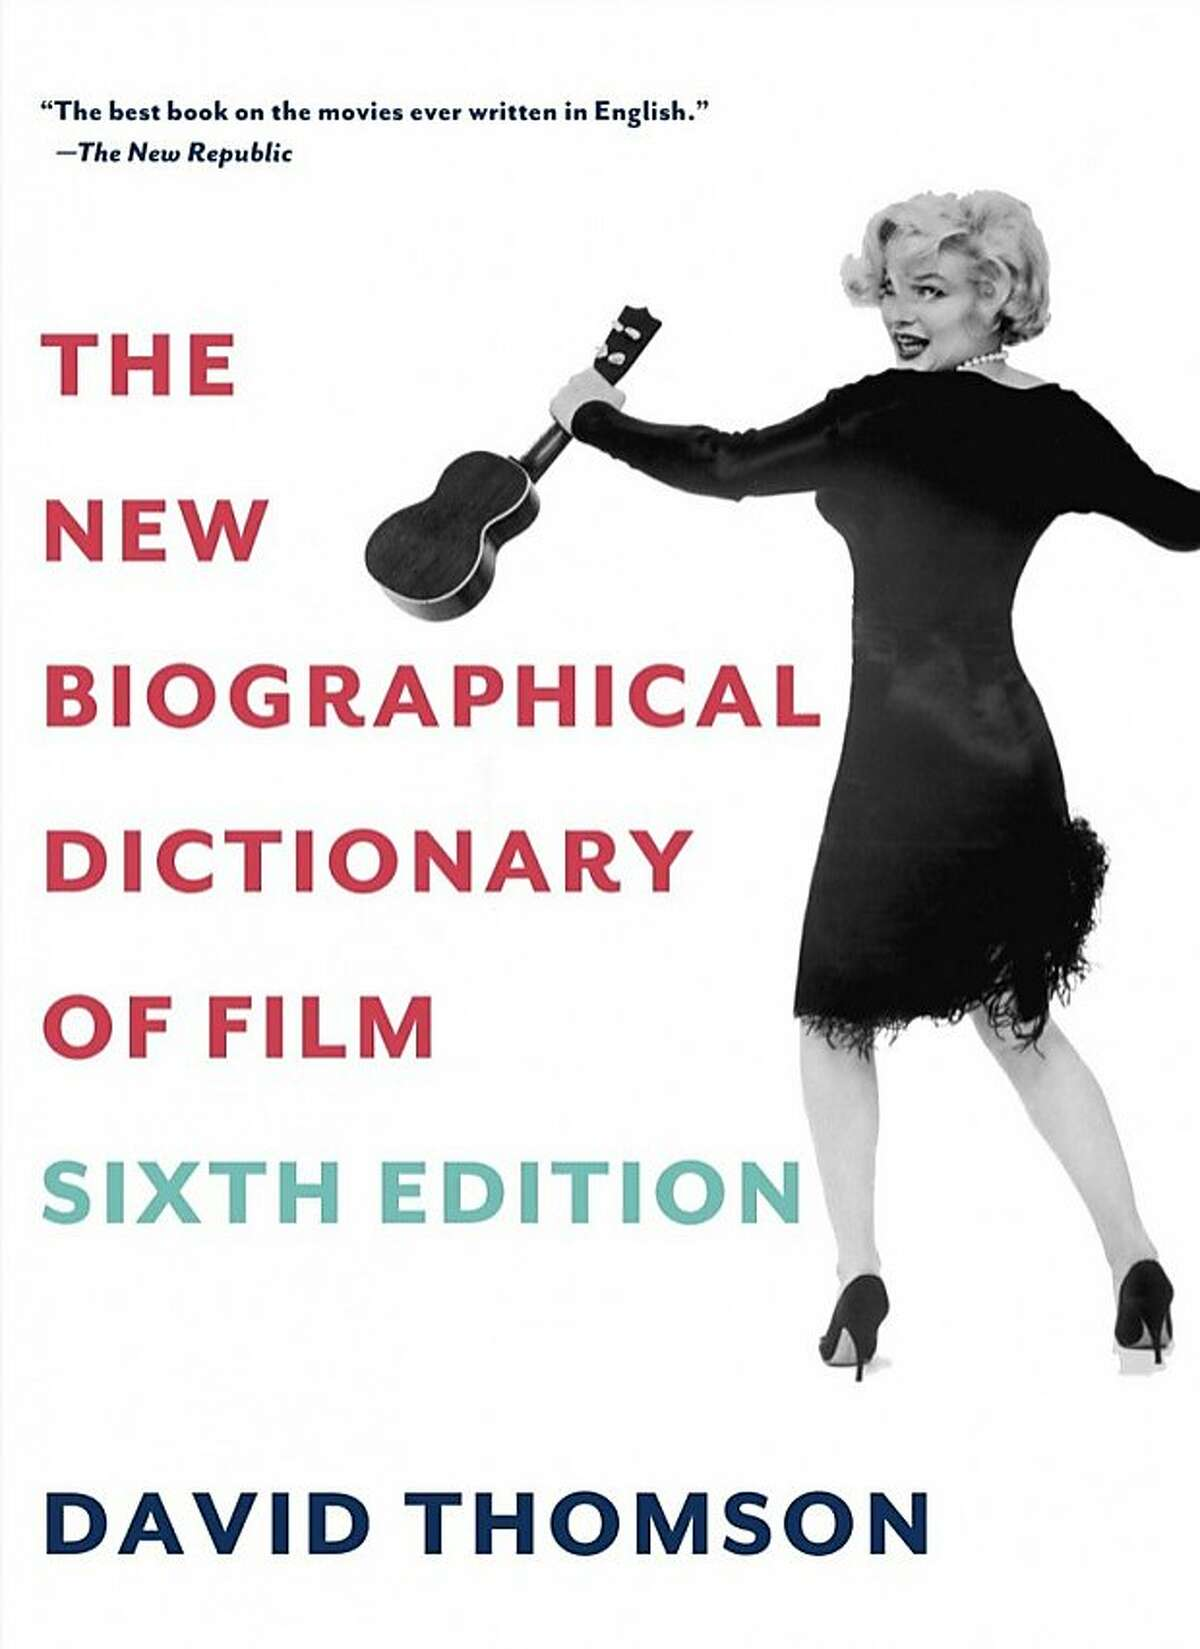 """""""The New Biographical Dictionary of Film: Sixth Edition,"""" by David Thomson"""